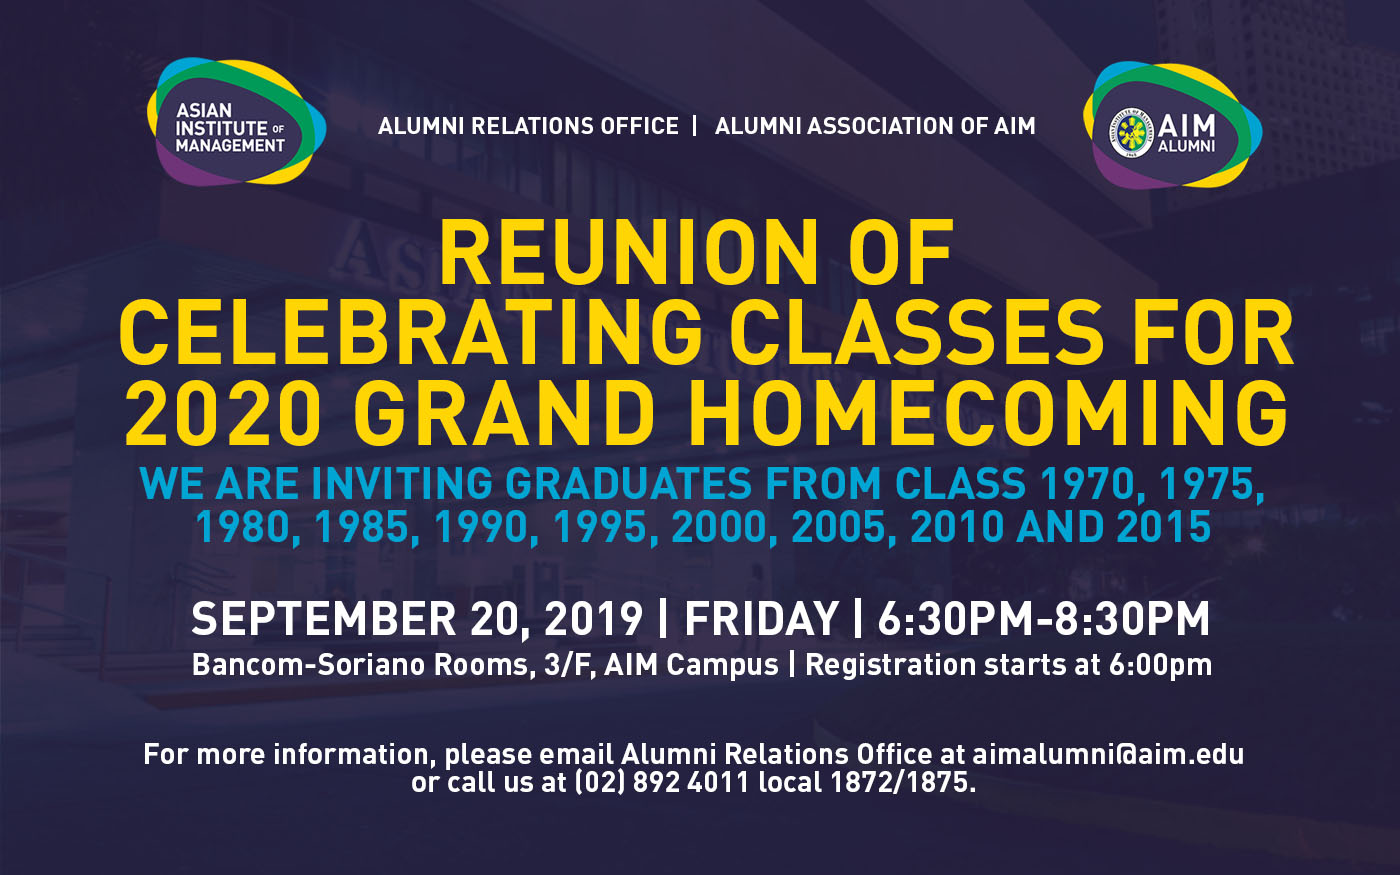 Reunion of Celebrating Classes for 2020 Grand Homecoming